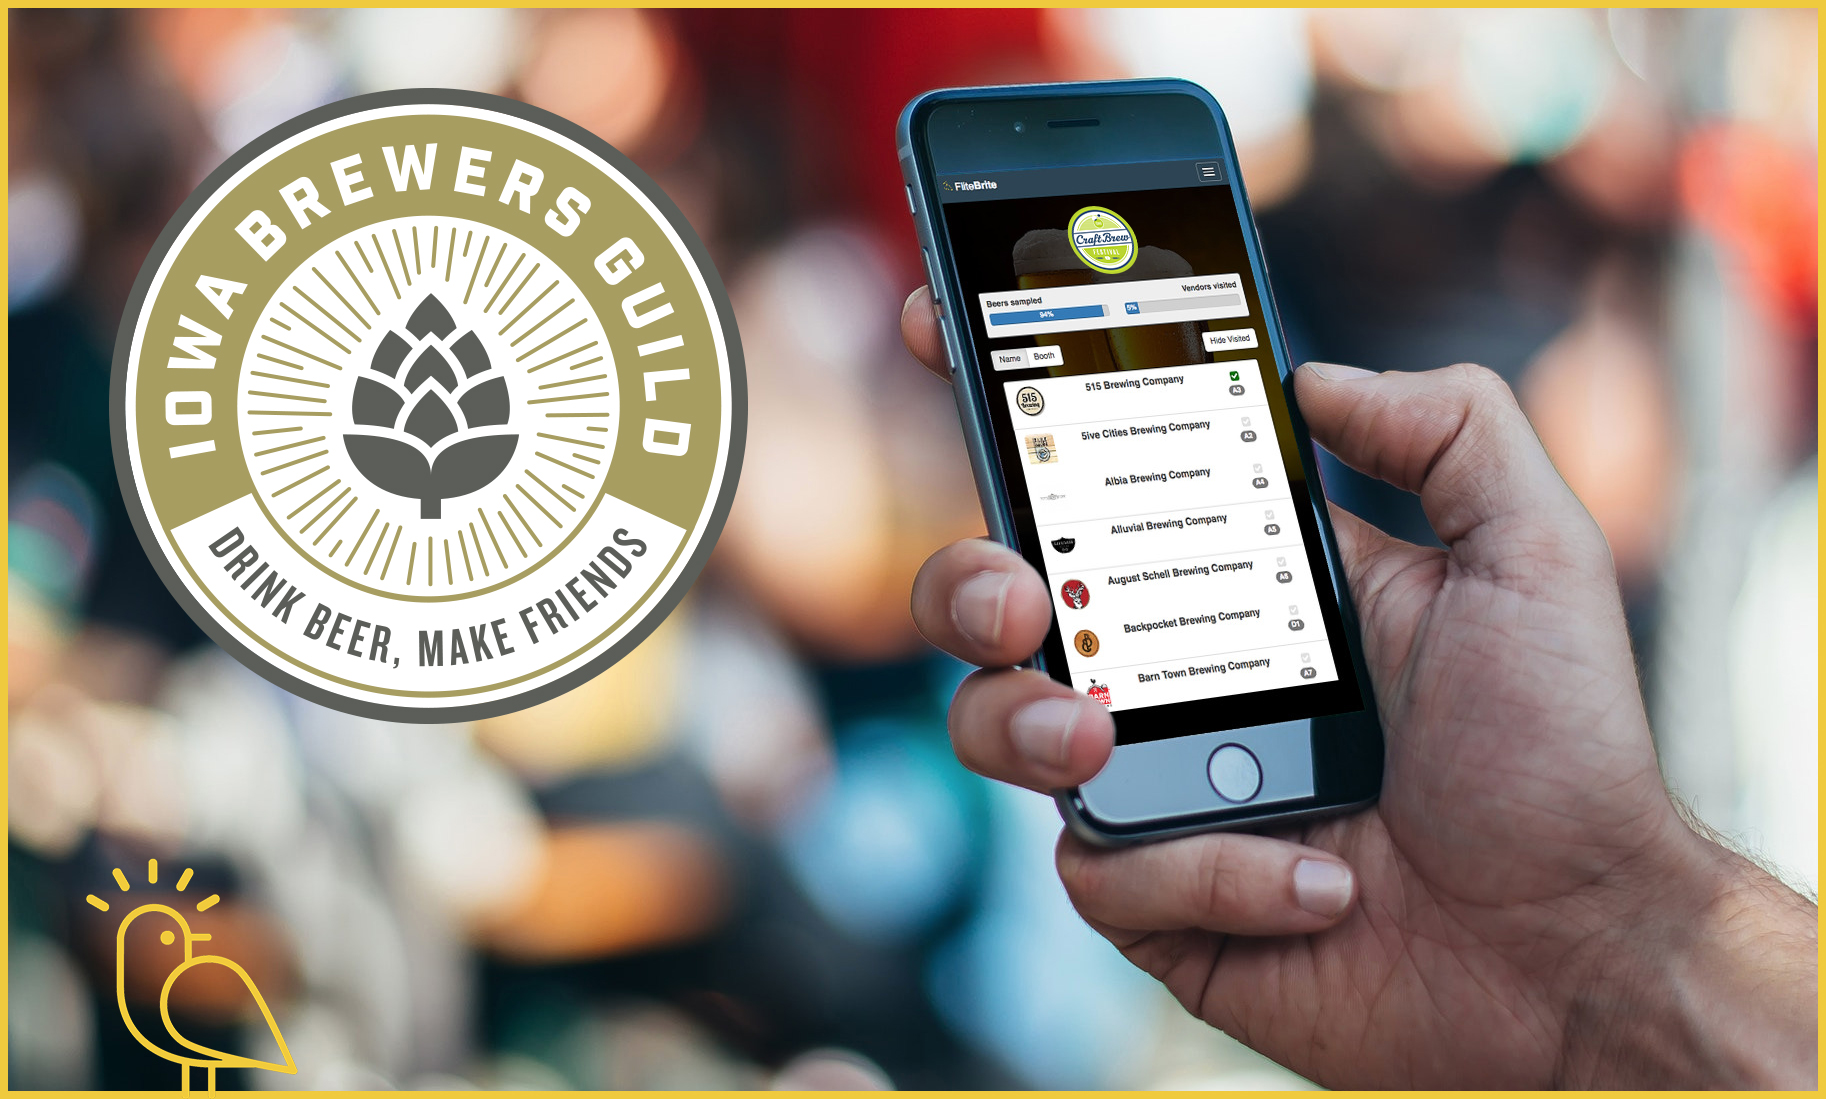 Iowa Brewers Guild - Iowa Craft Brew Festival App